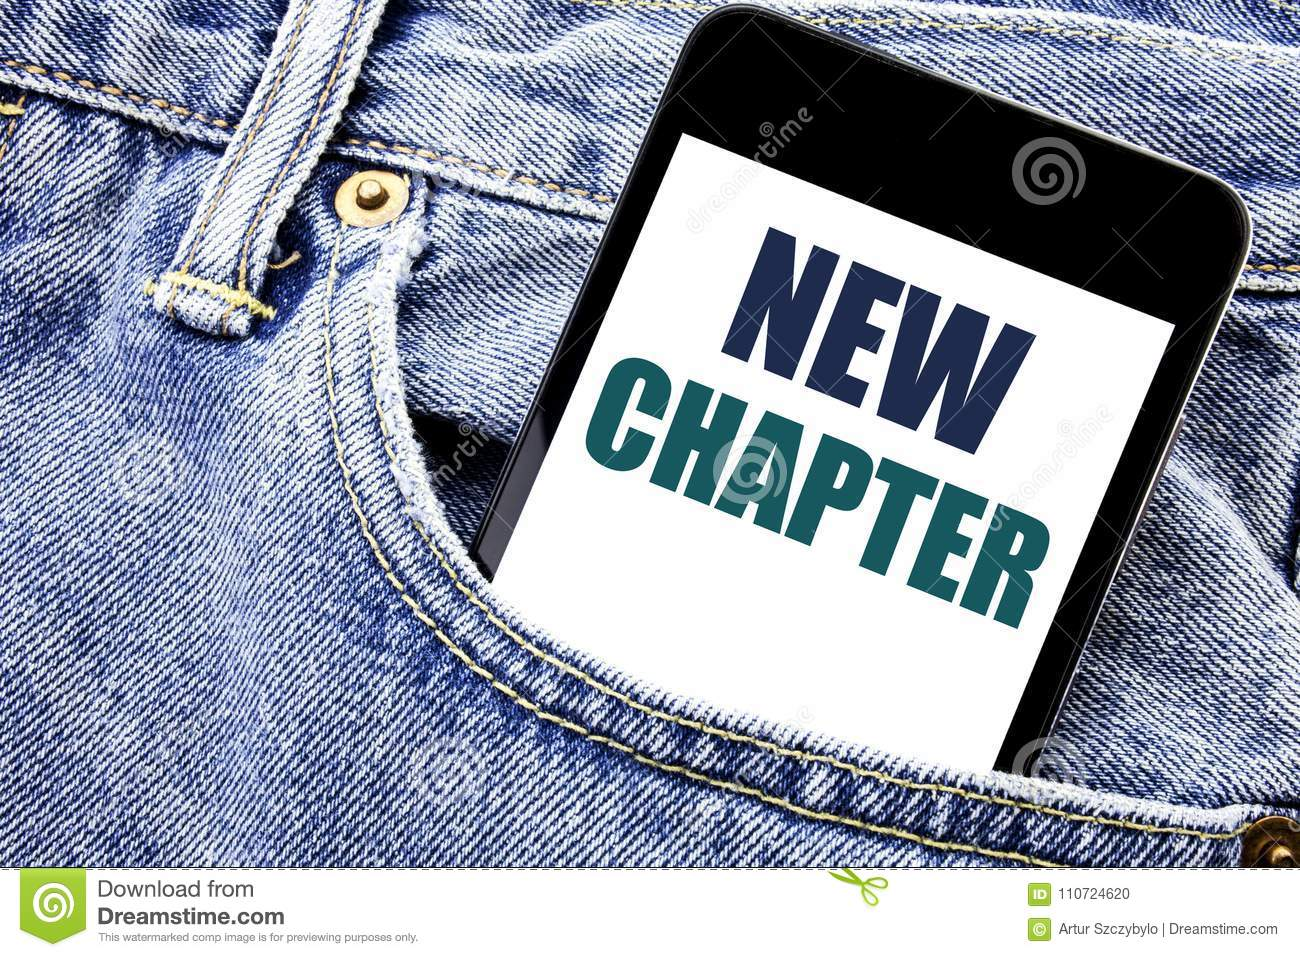 Conceptual hand writing text caption inspiration showing New Chapter. Business concept for Starting New Future Life Written phone